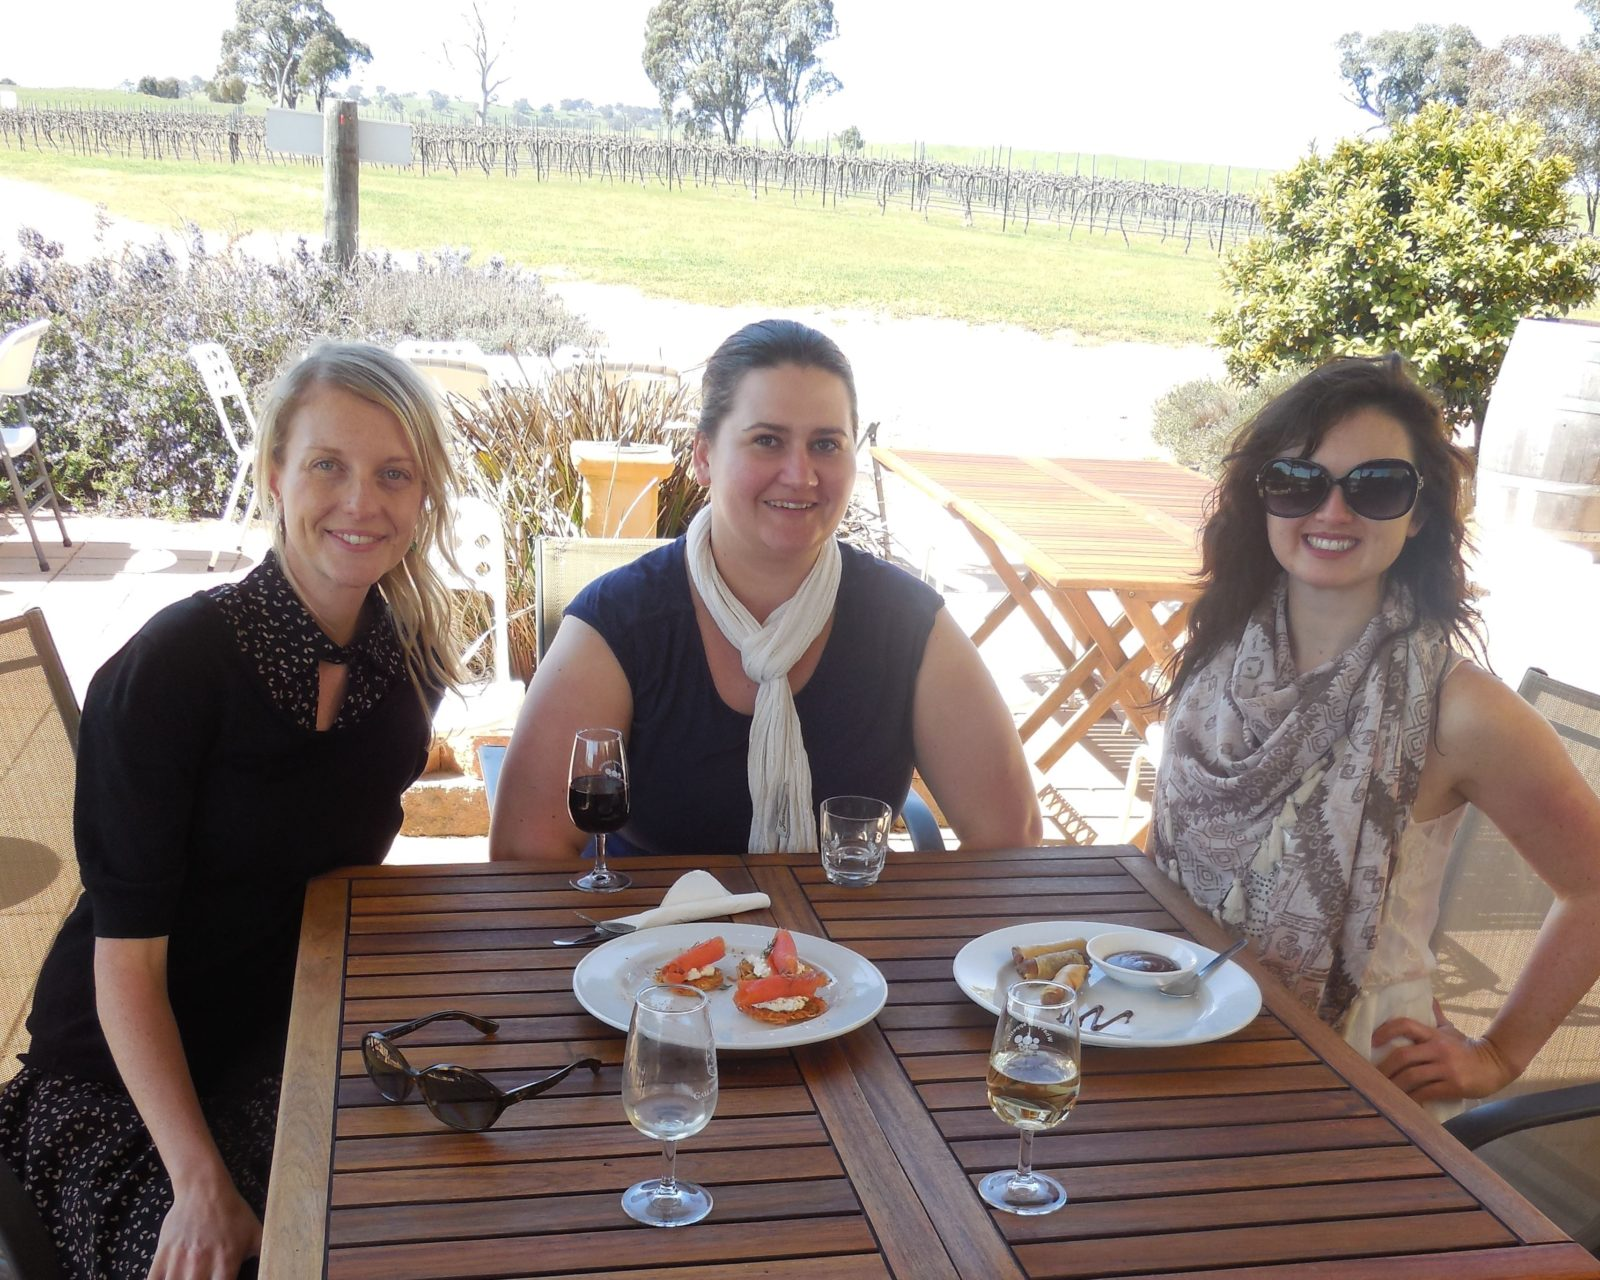 Guests enjoy cheeses and wines made at Gallagher Wines